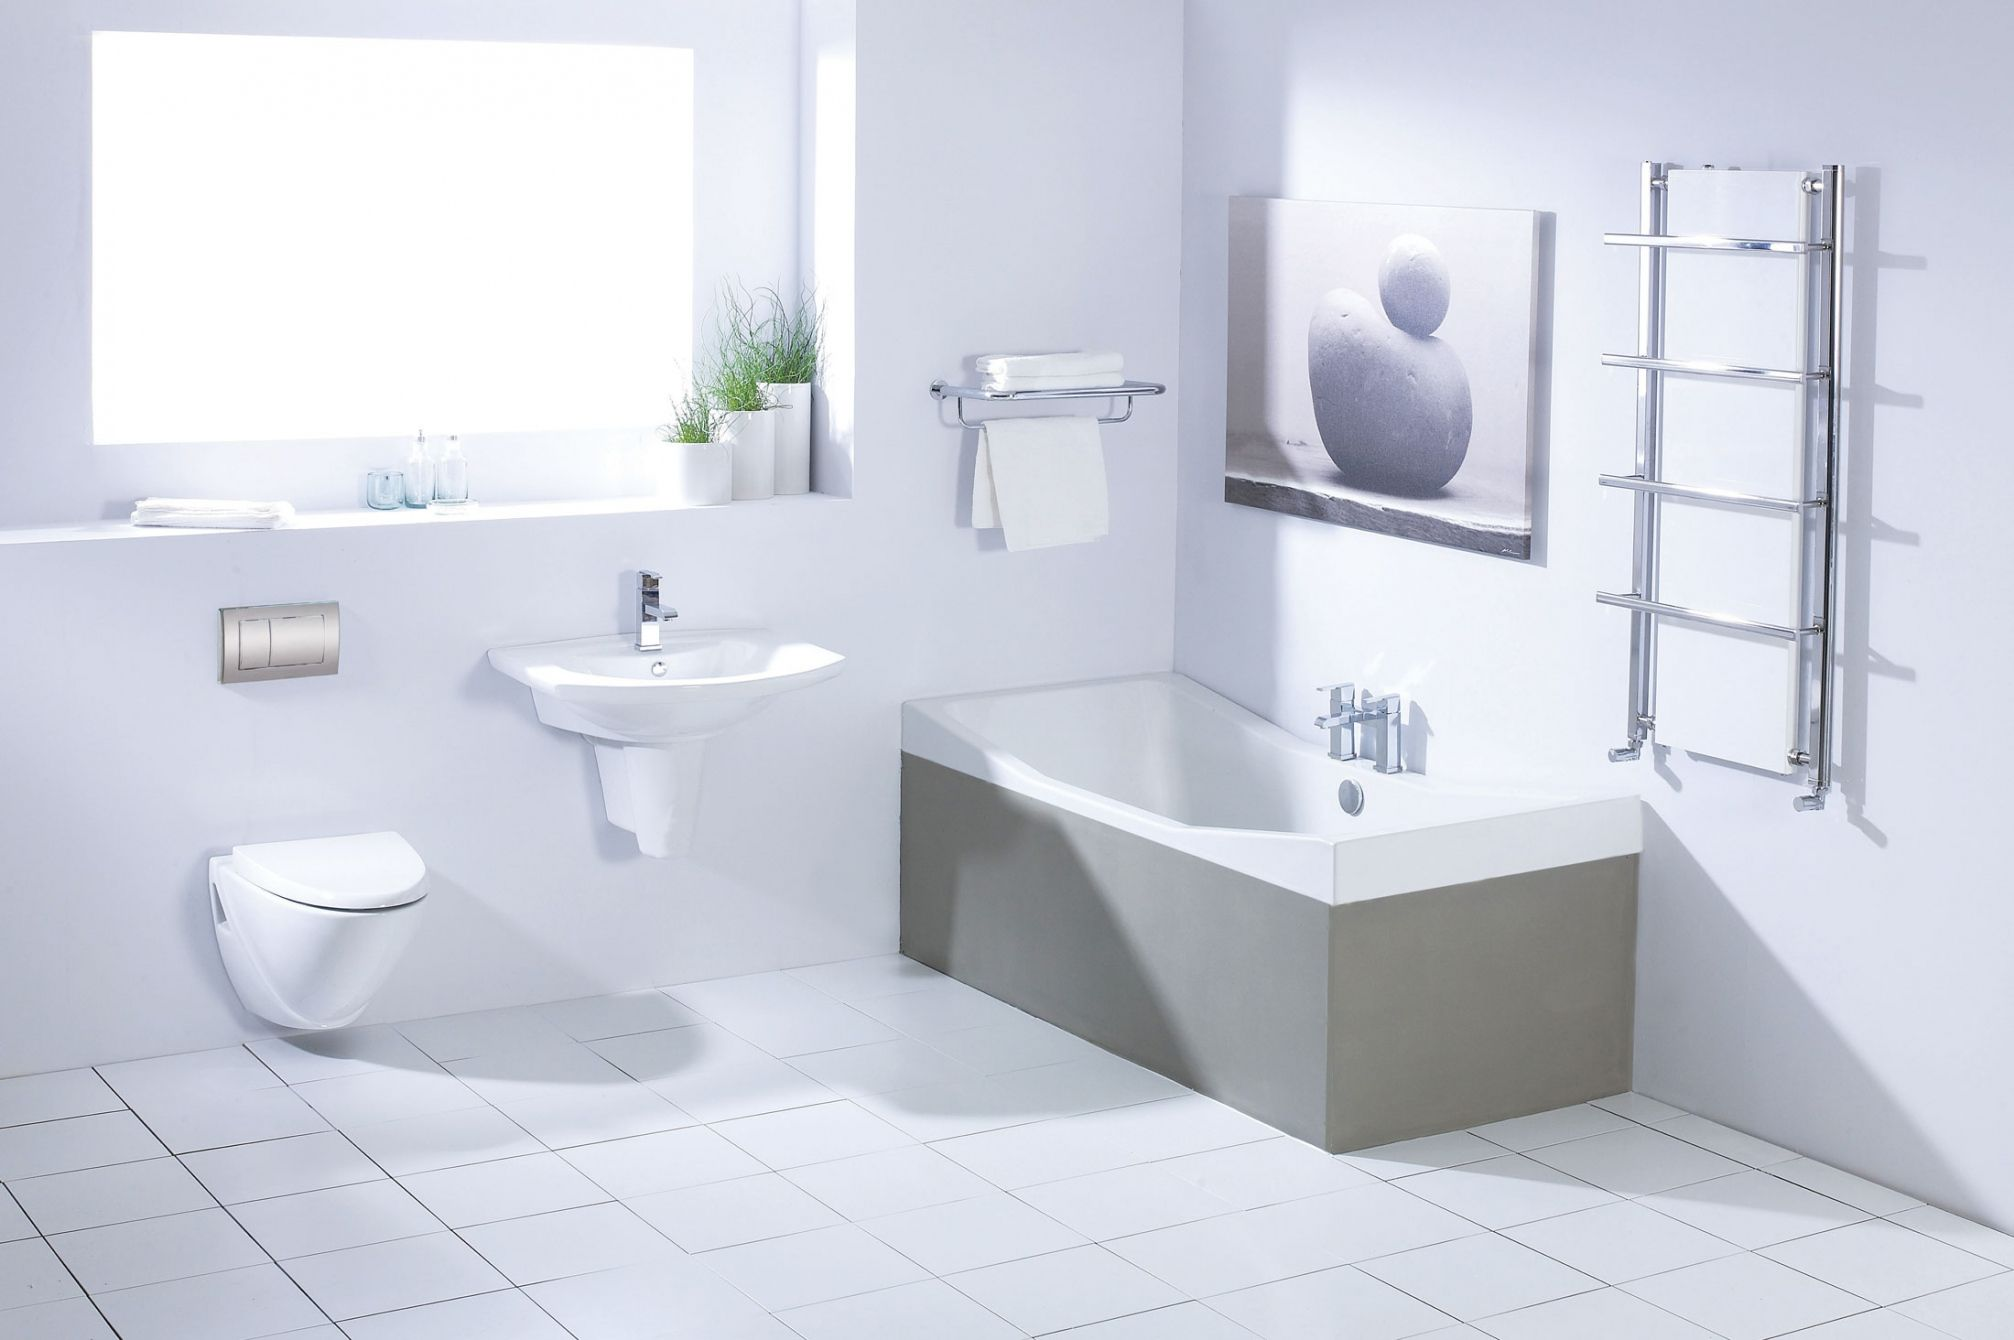 100 Small Corner toilets for Small Bathrooms Best Paint for Interior Walls Check more